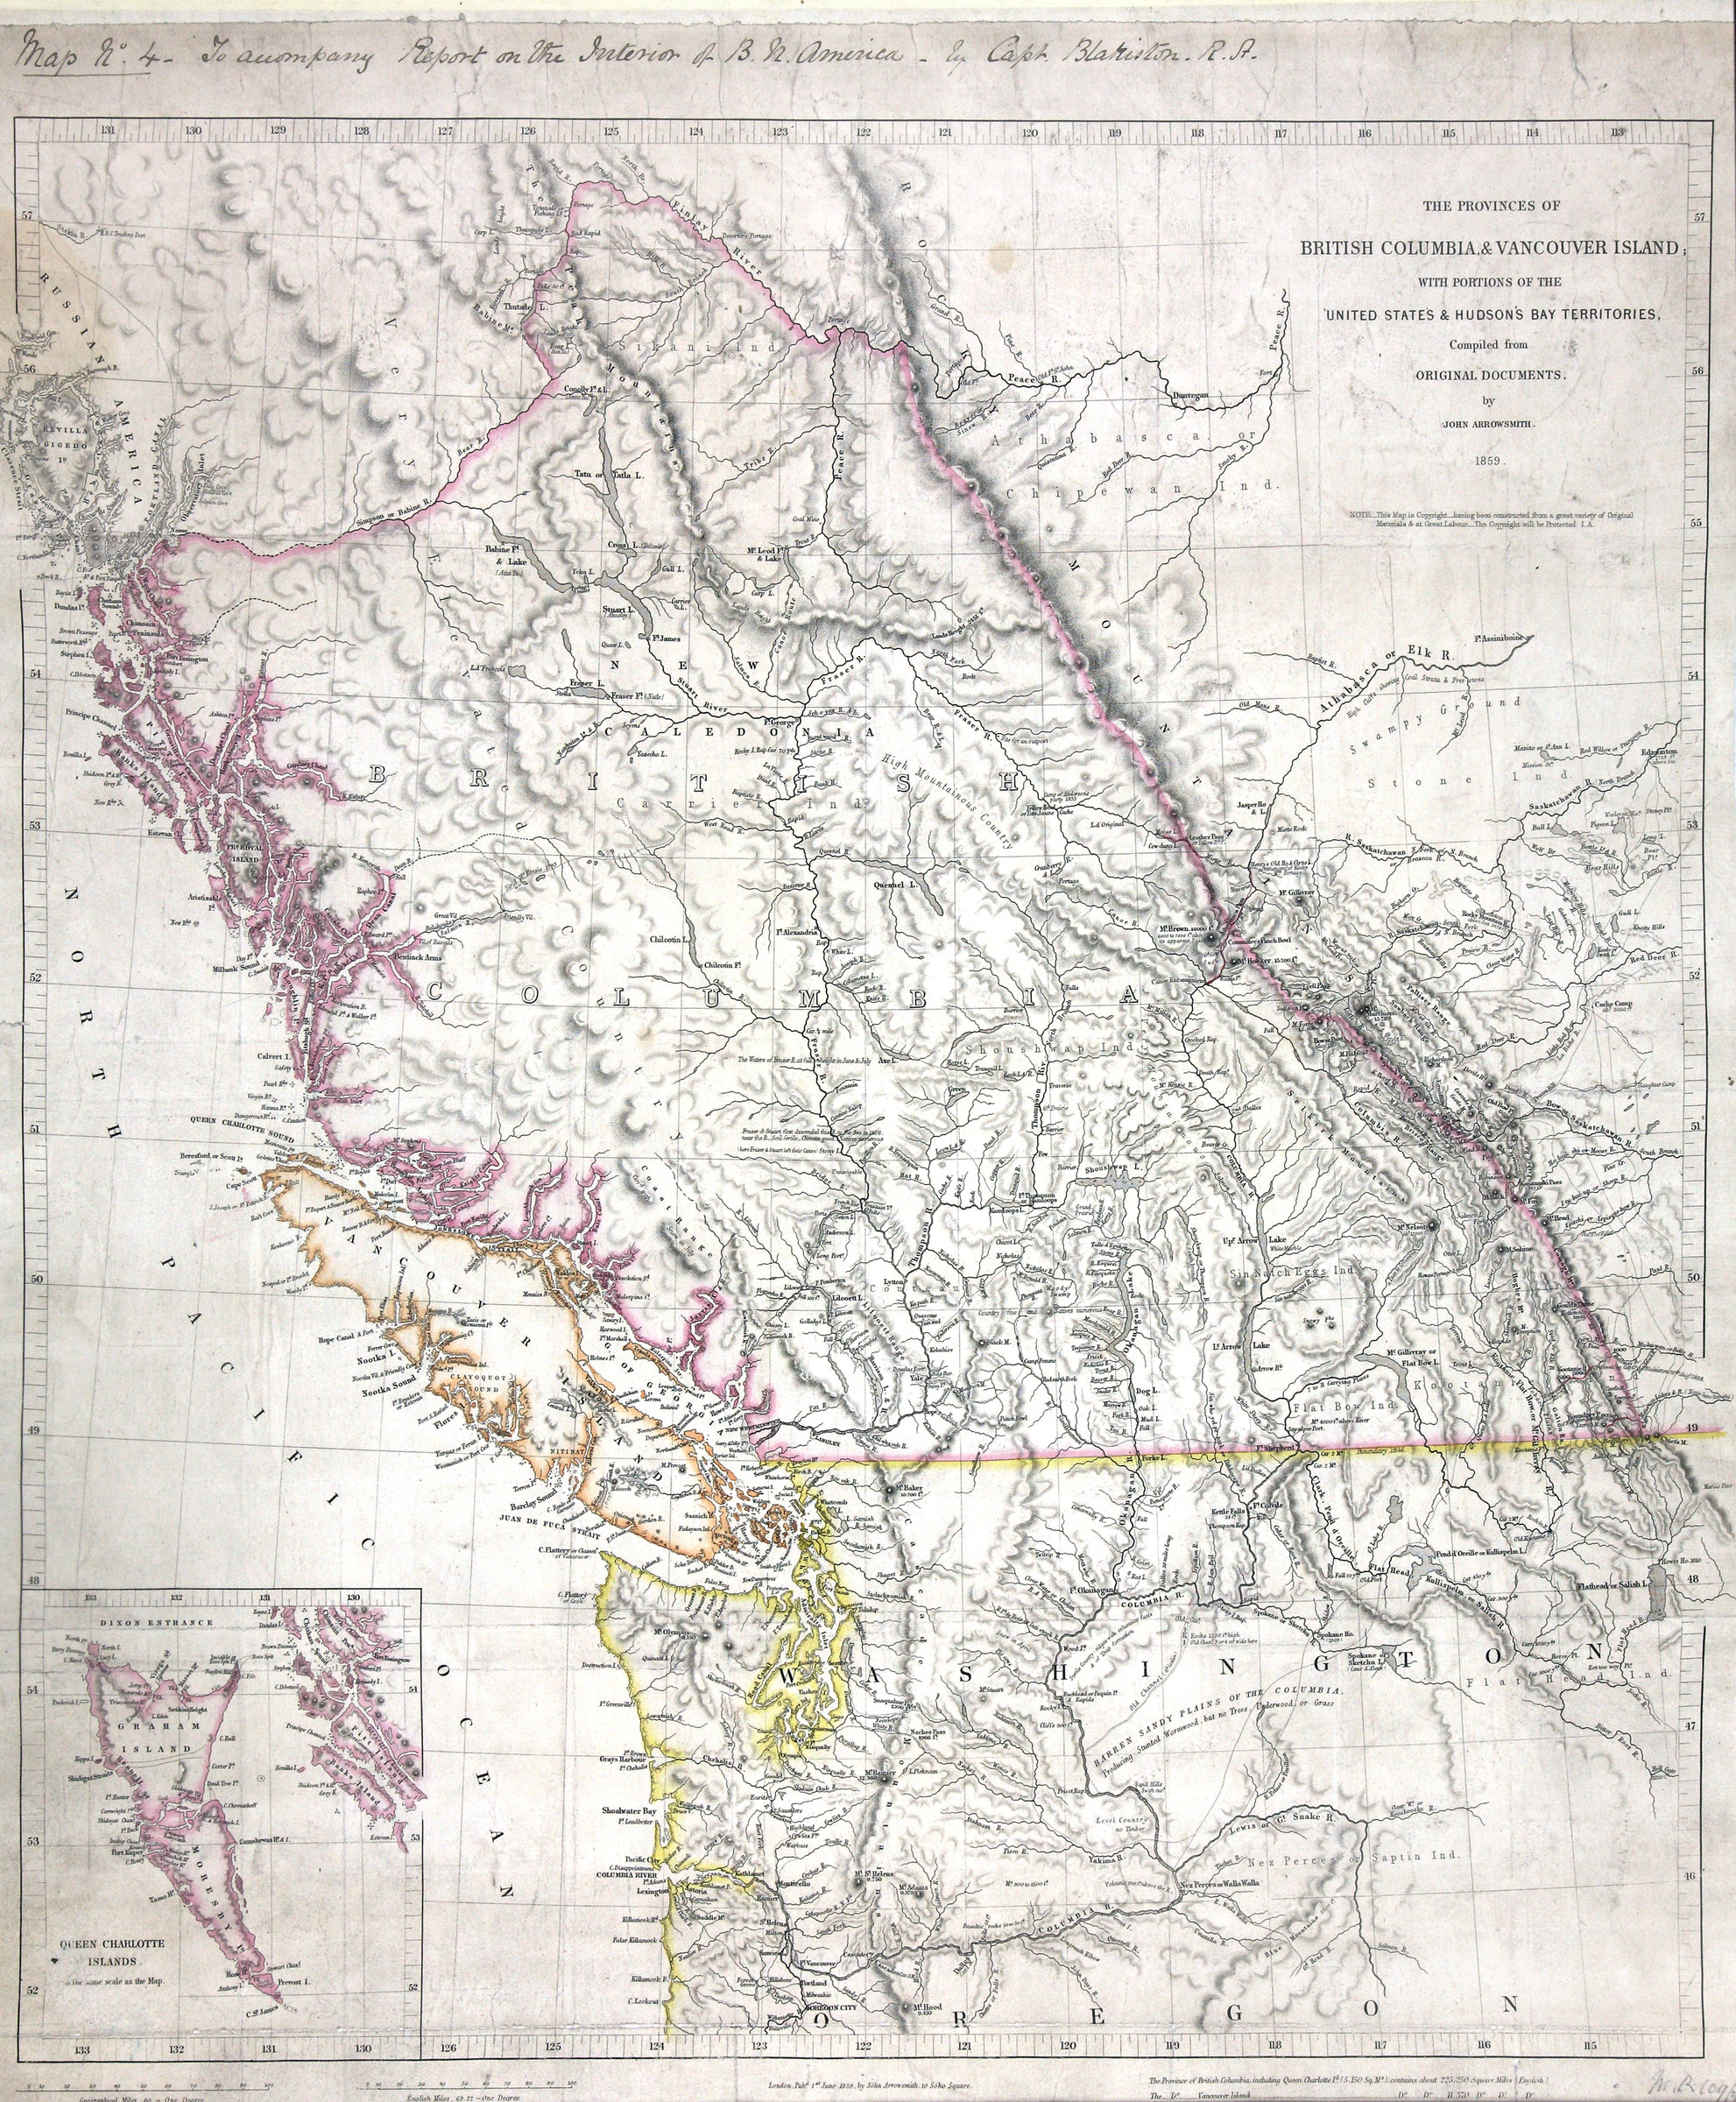 Provinces of British Columbia and Vancouver Island; with ... on west rivers in united states, district of columbia map united states, british columbia map with cities, british columbia map alaska, columbia river map united states, british columbia canada, british columbia and alberta road map, columbia city in the united states, british columbia usa,